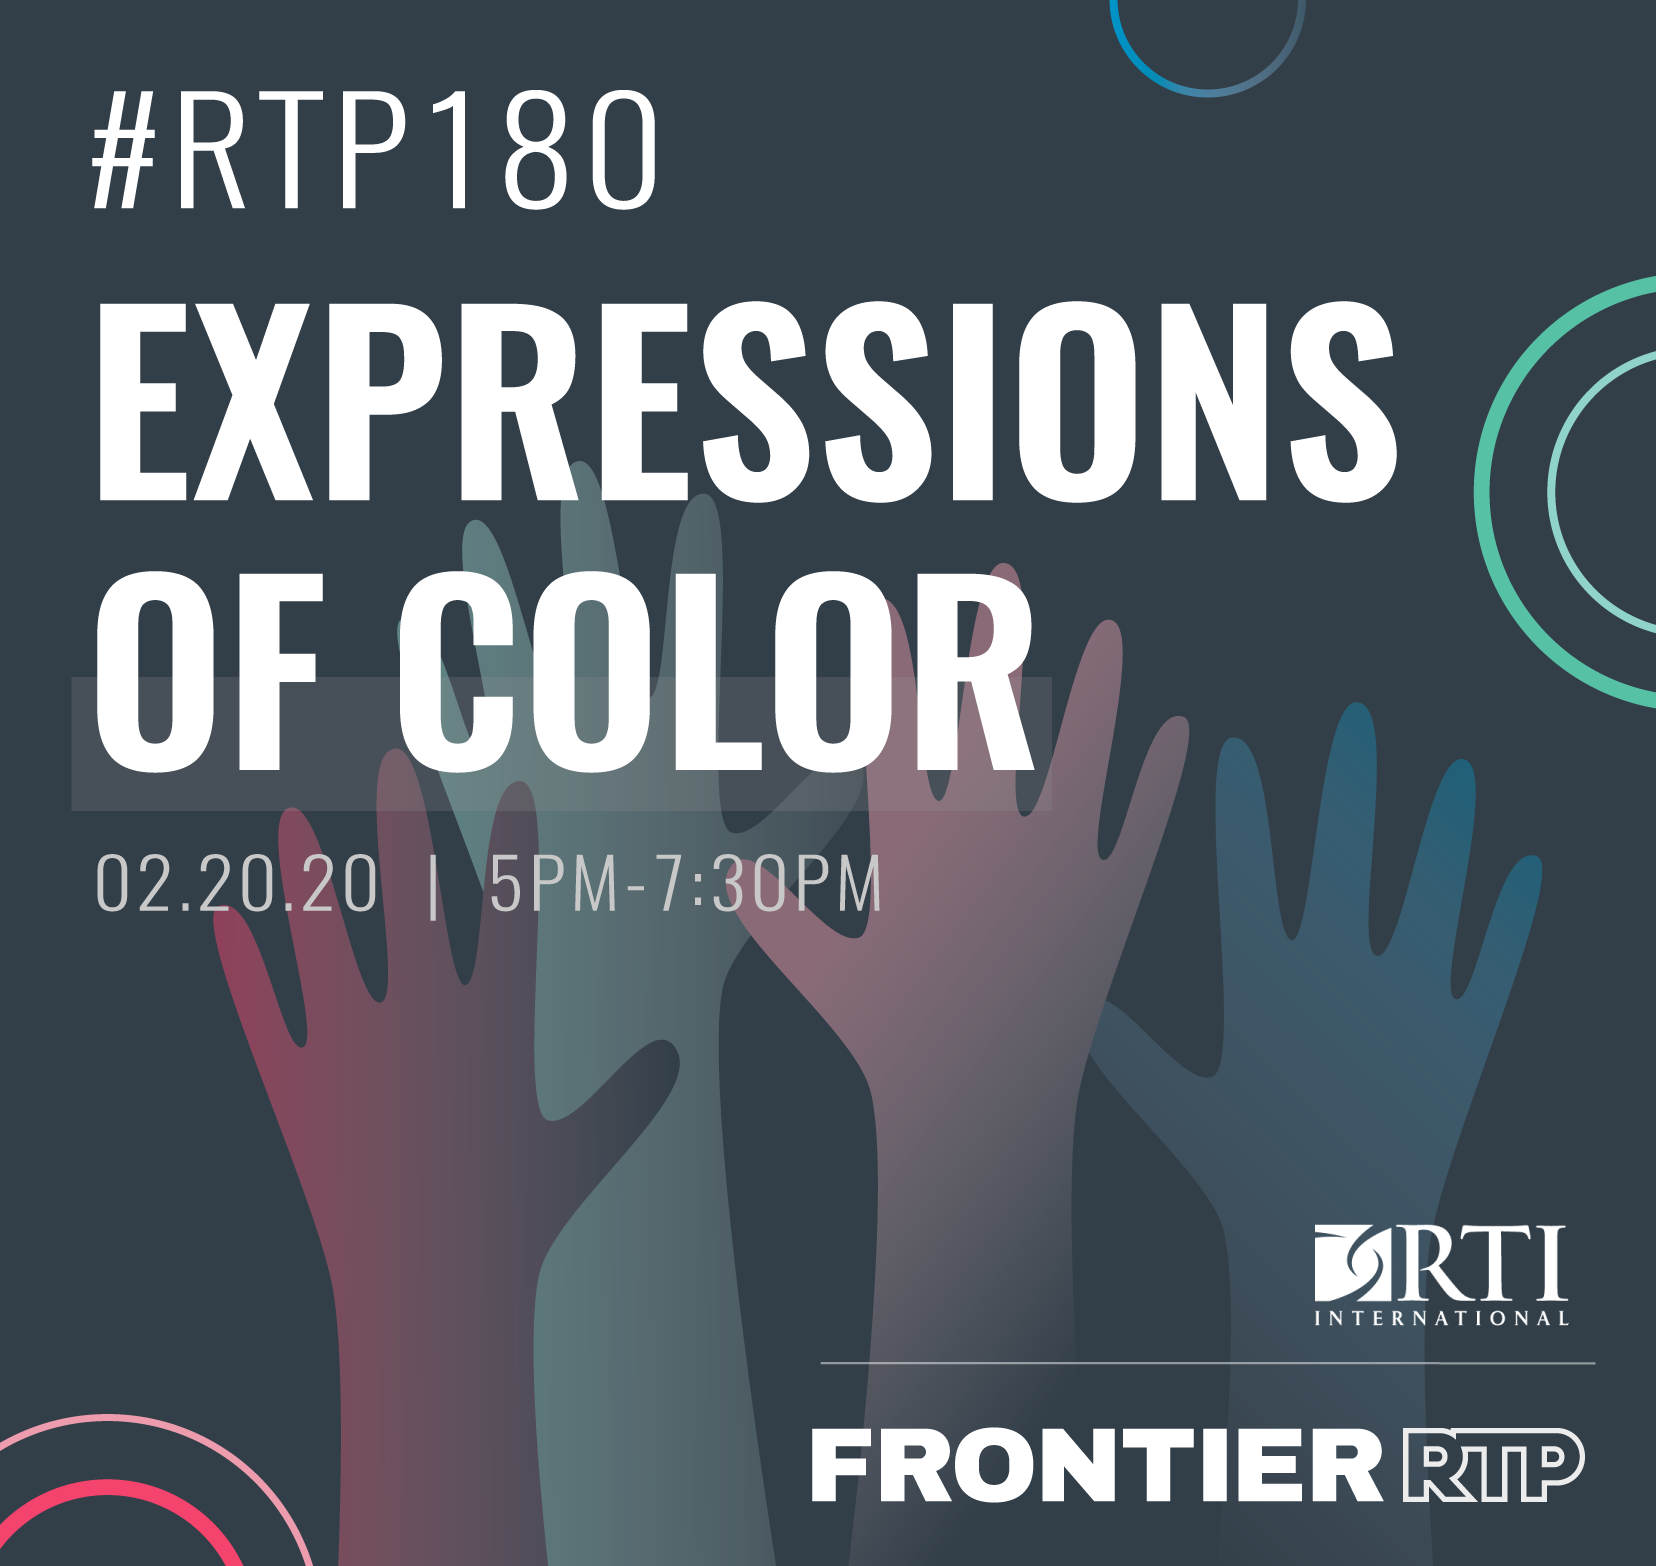 RTP180: Expressions of Color